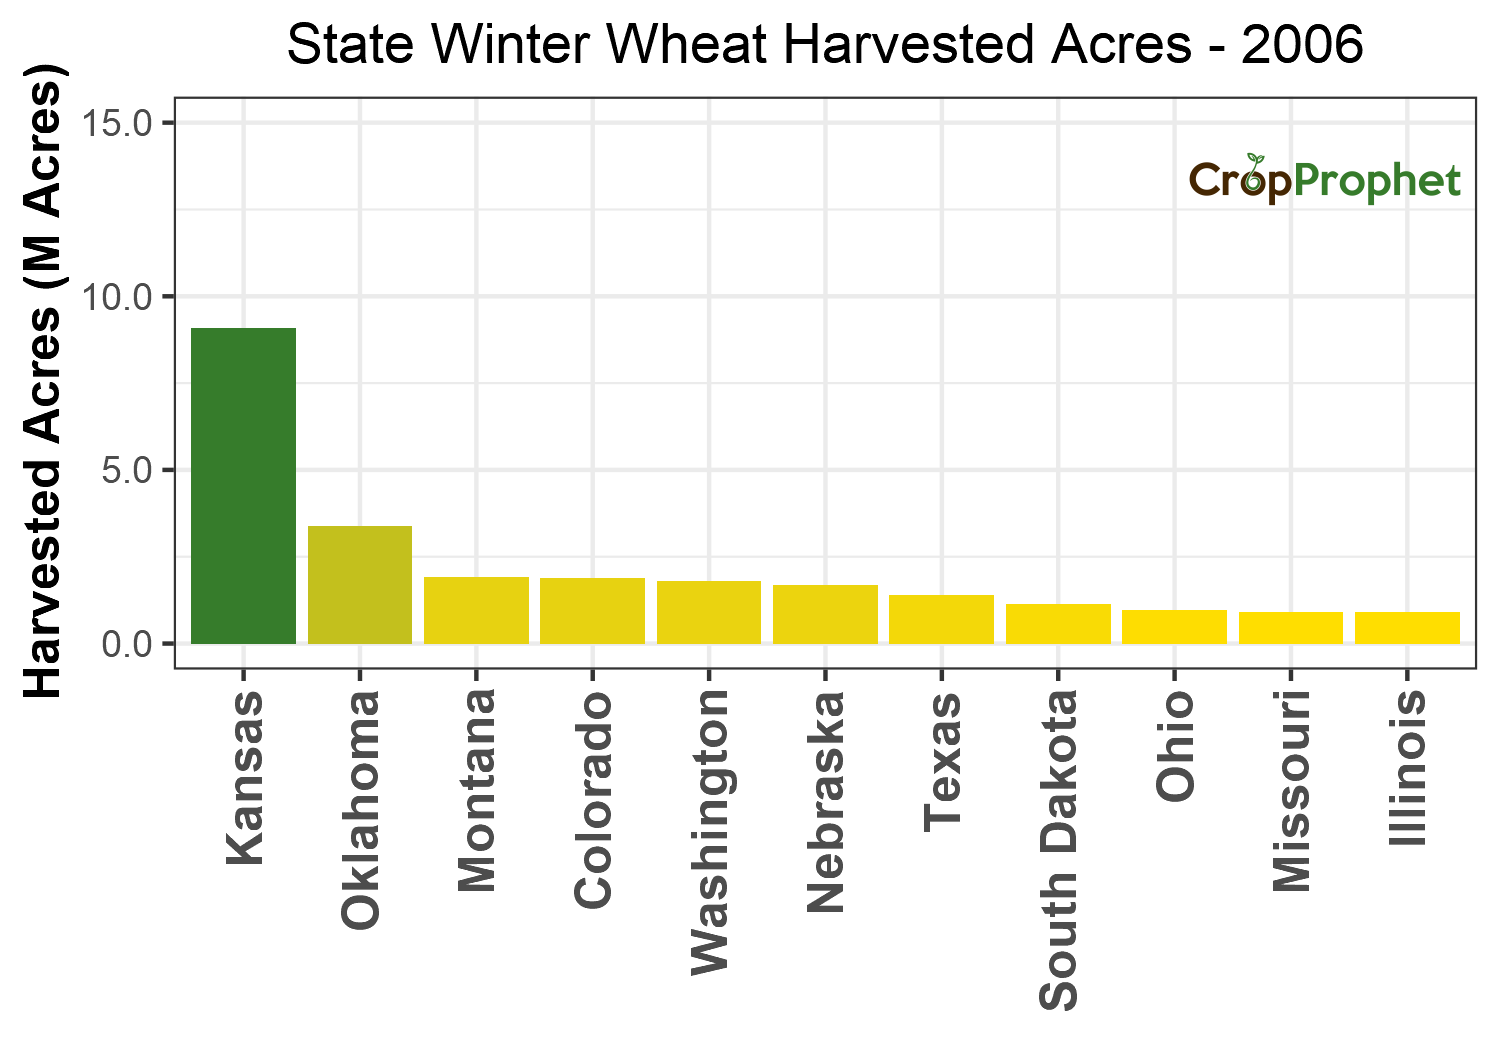 Winter wheat Harvested Acres by State - 2006 Rankings